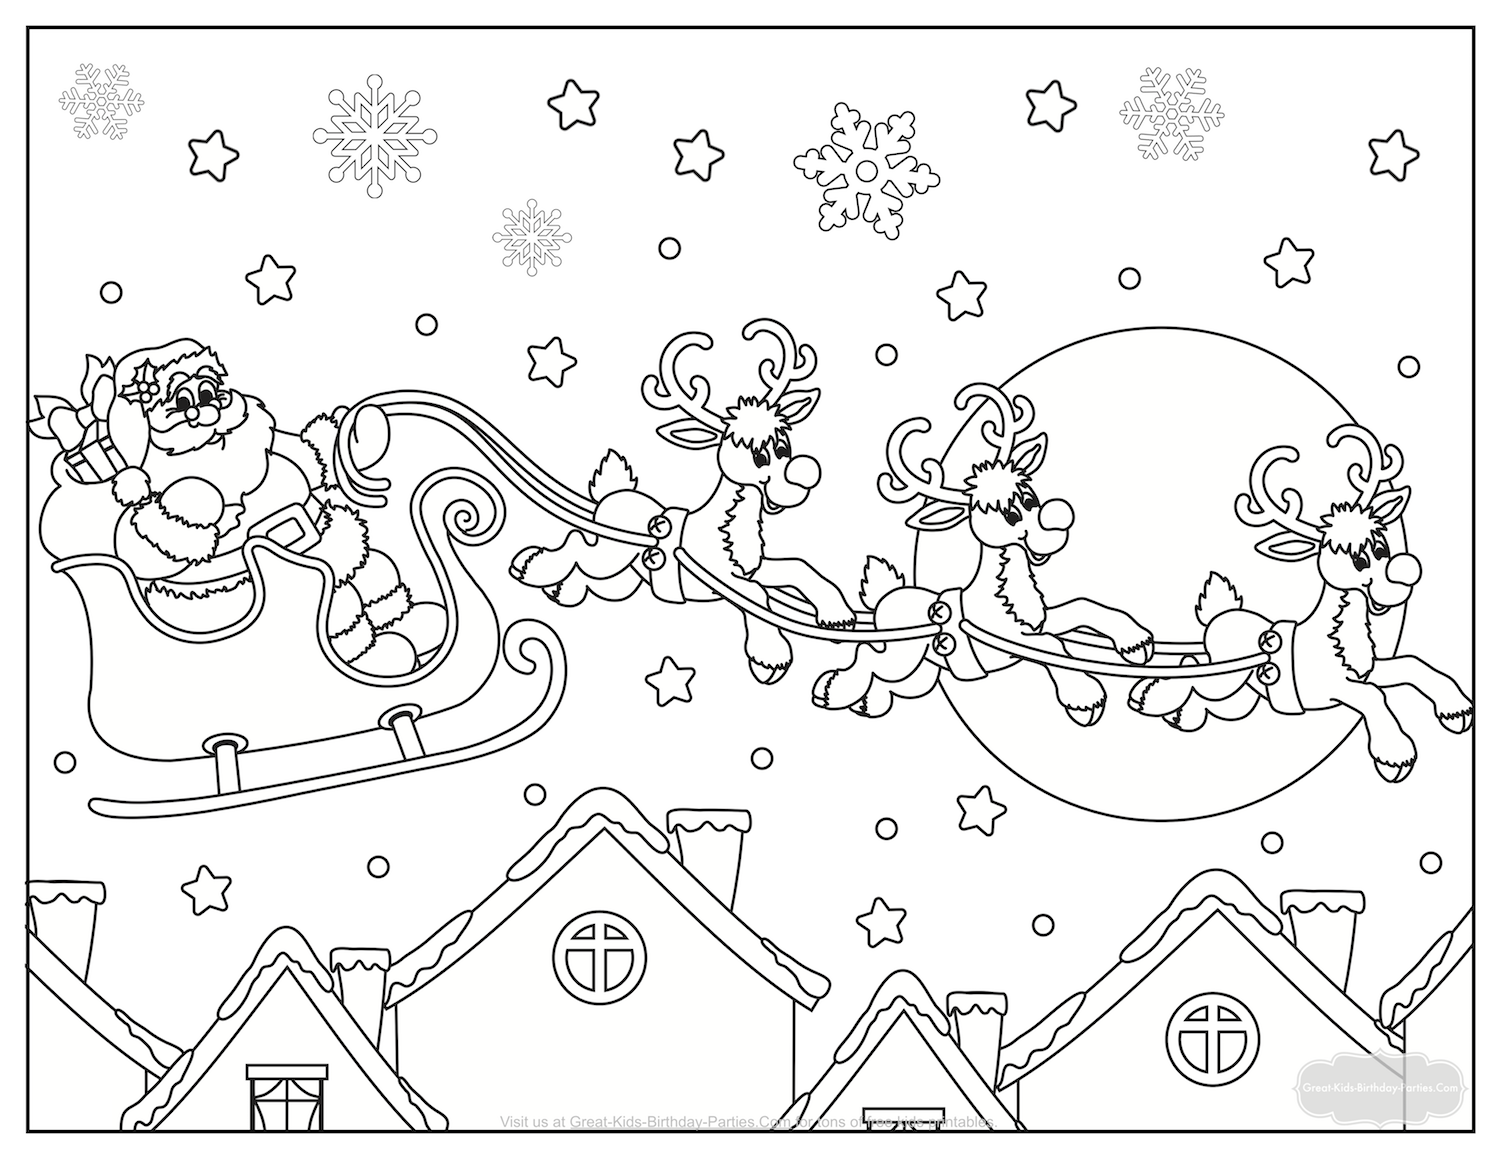 Christmas Coloring Pages Christmas Coloring Pages Santa Coloring Pages Free Christmas Coloring Pages